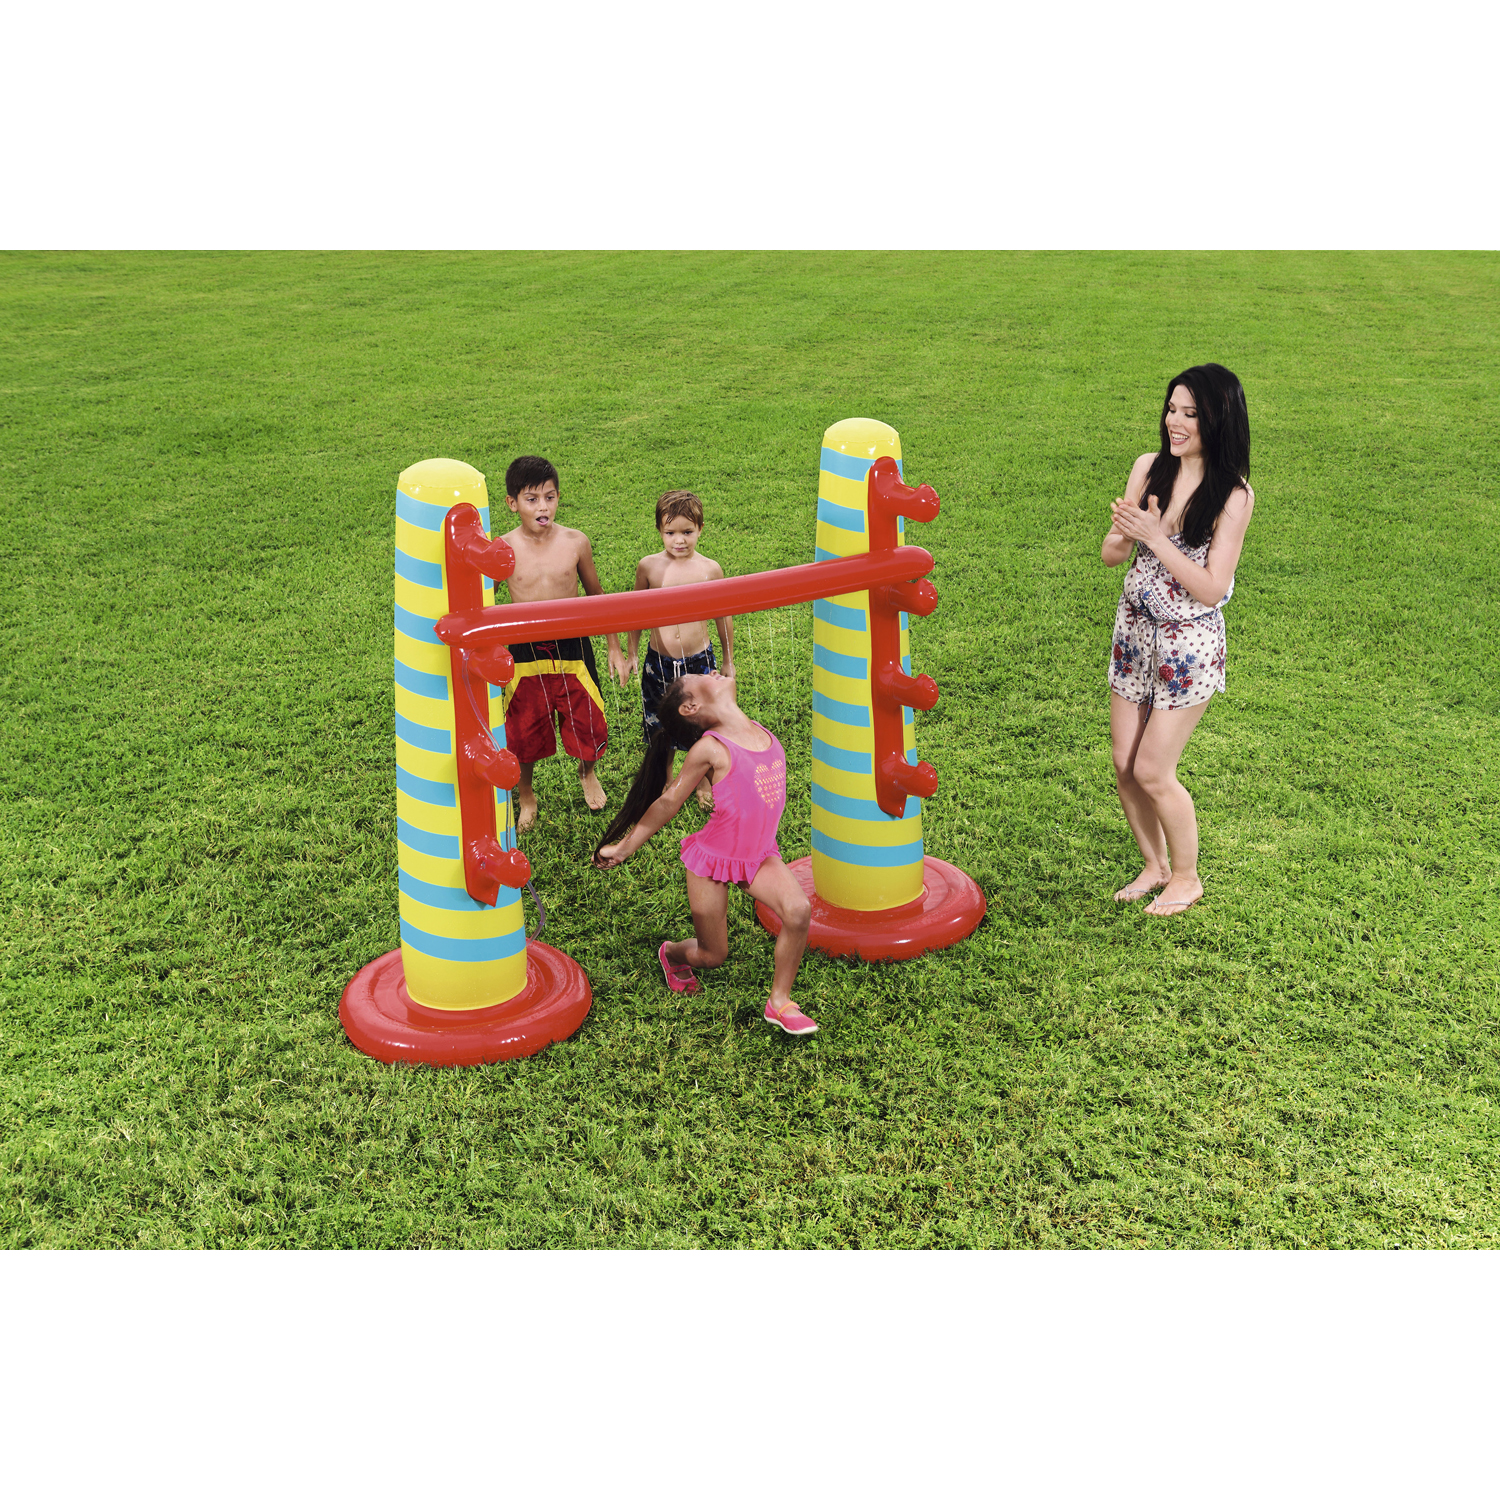 H2OGO! Limber Limbo Outdoor Sprinkler by BESTWAY HONG KONG INTERNATIONAL LIMITED